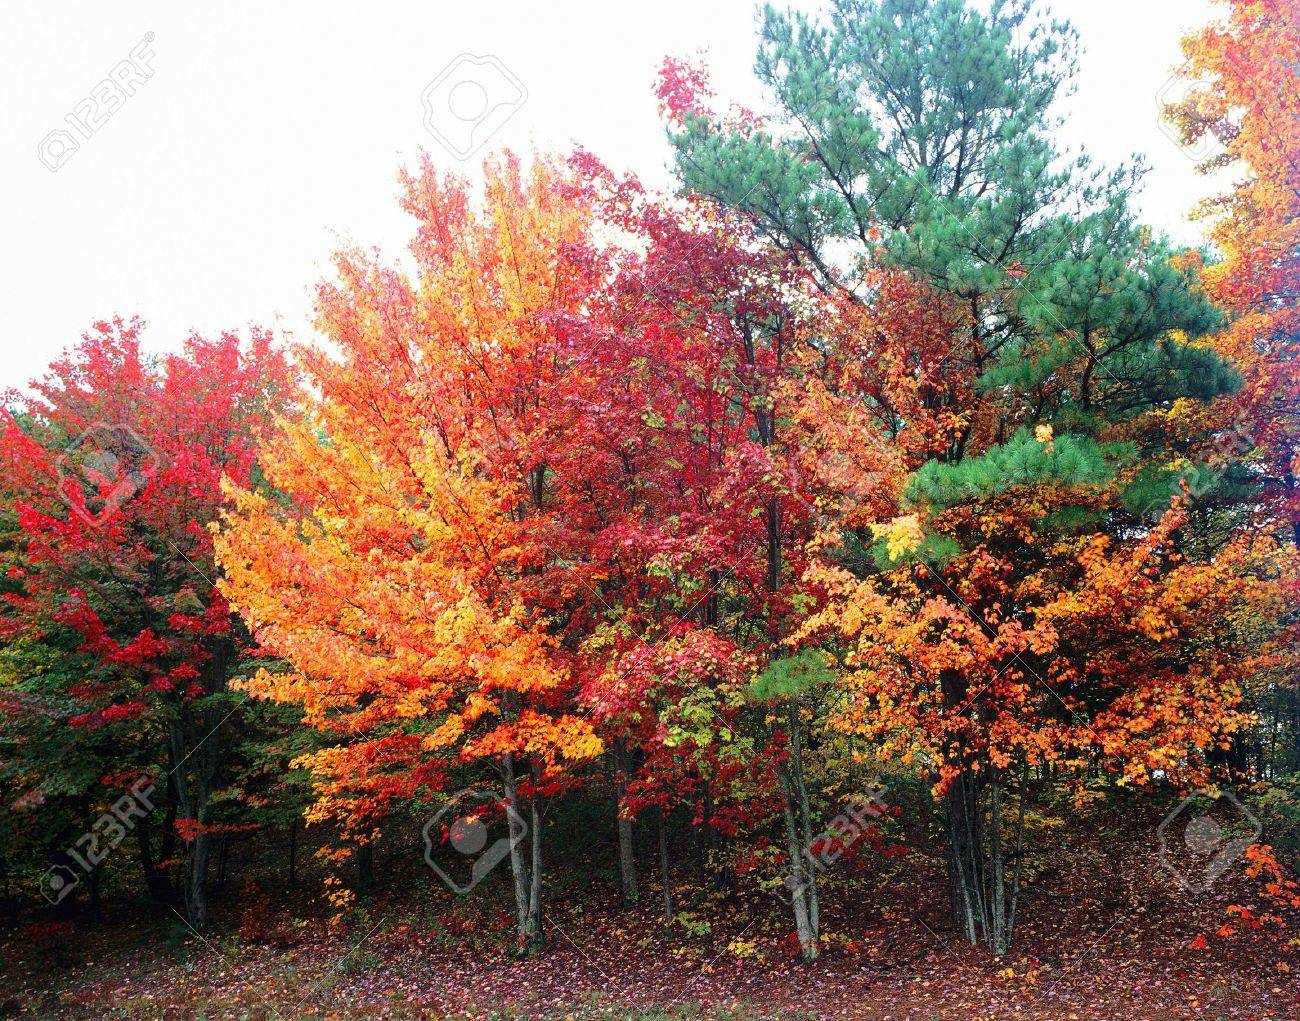 Fall Foliage in Tennessee Stock Photo - 2598925